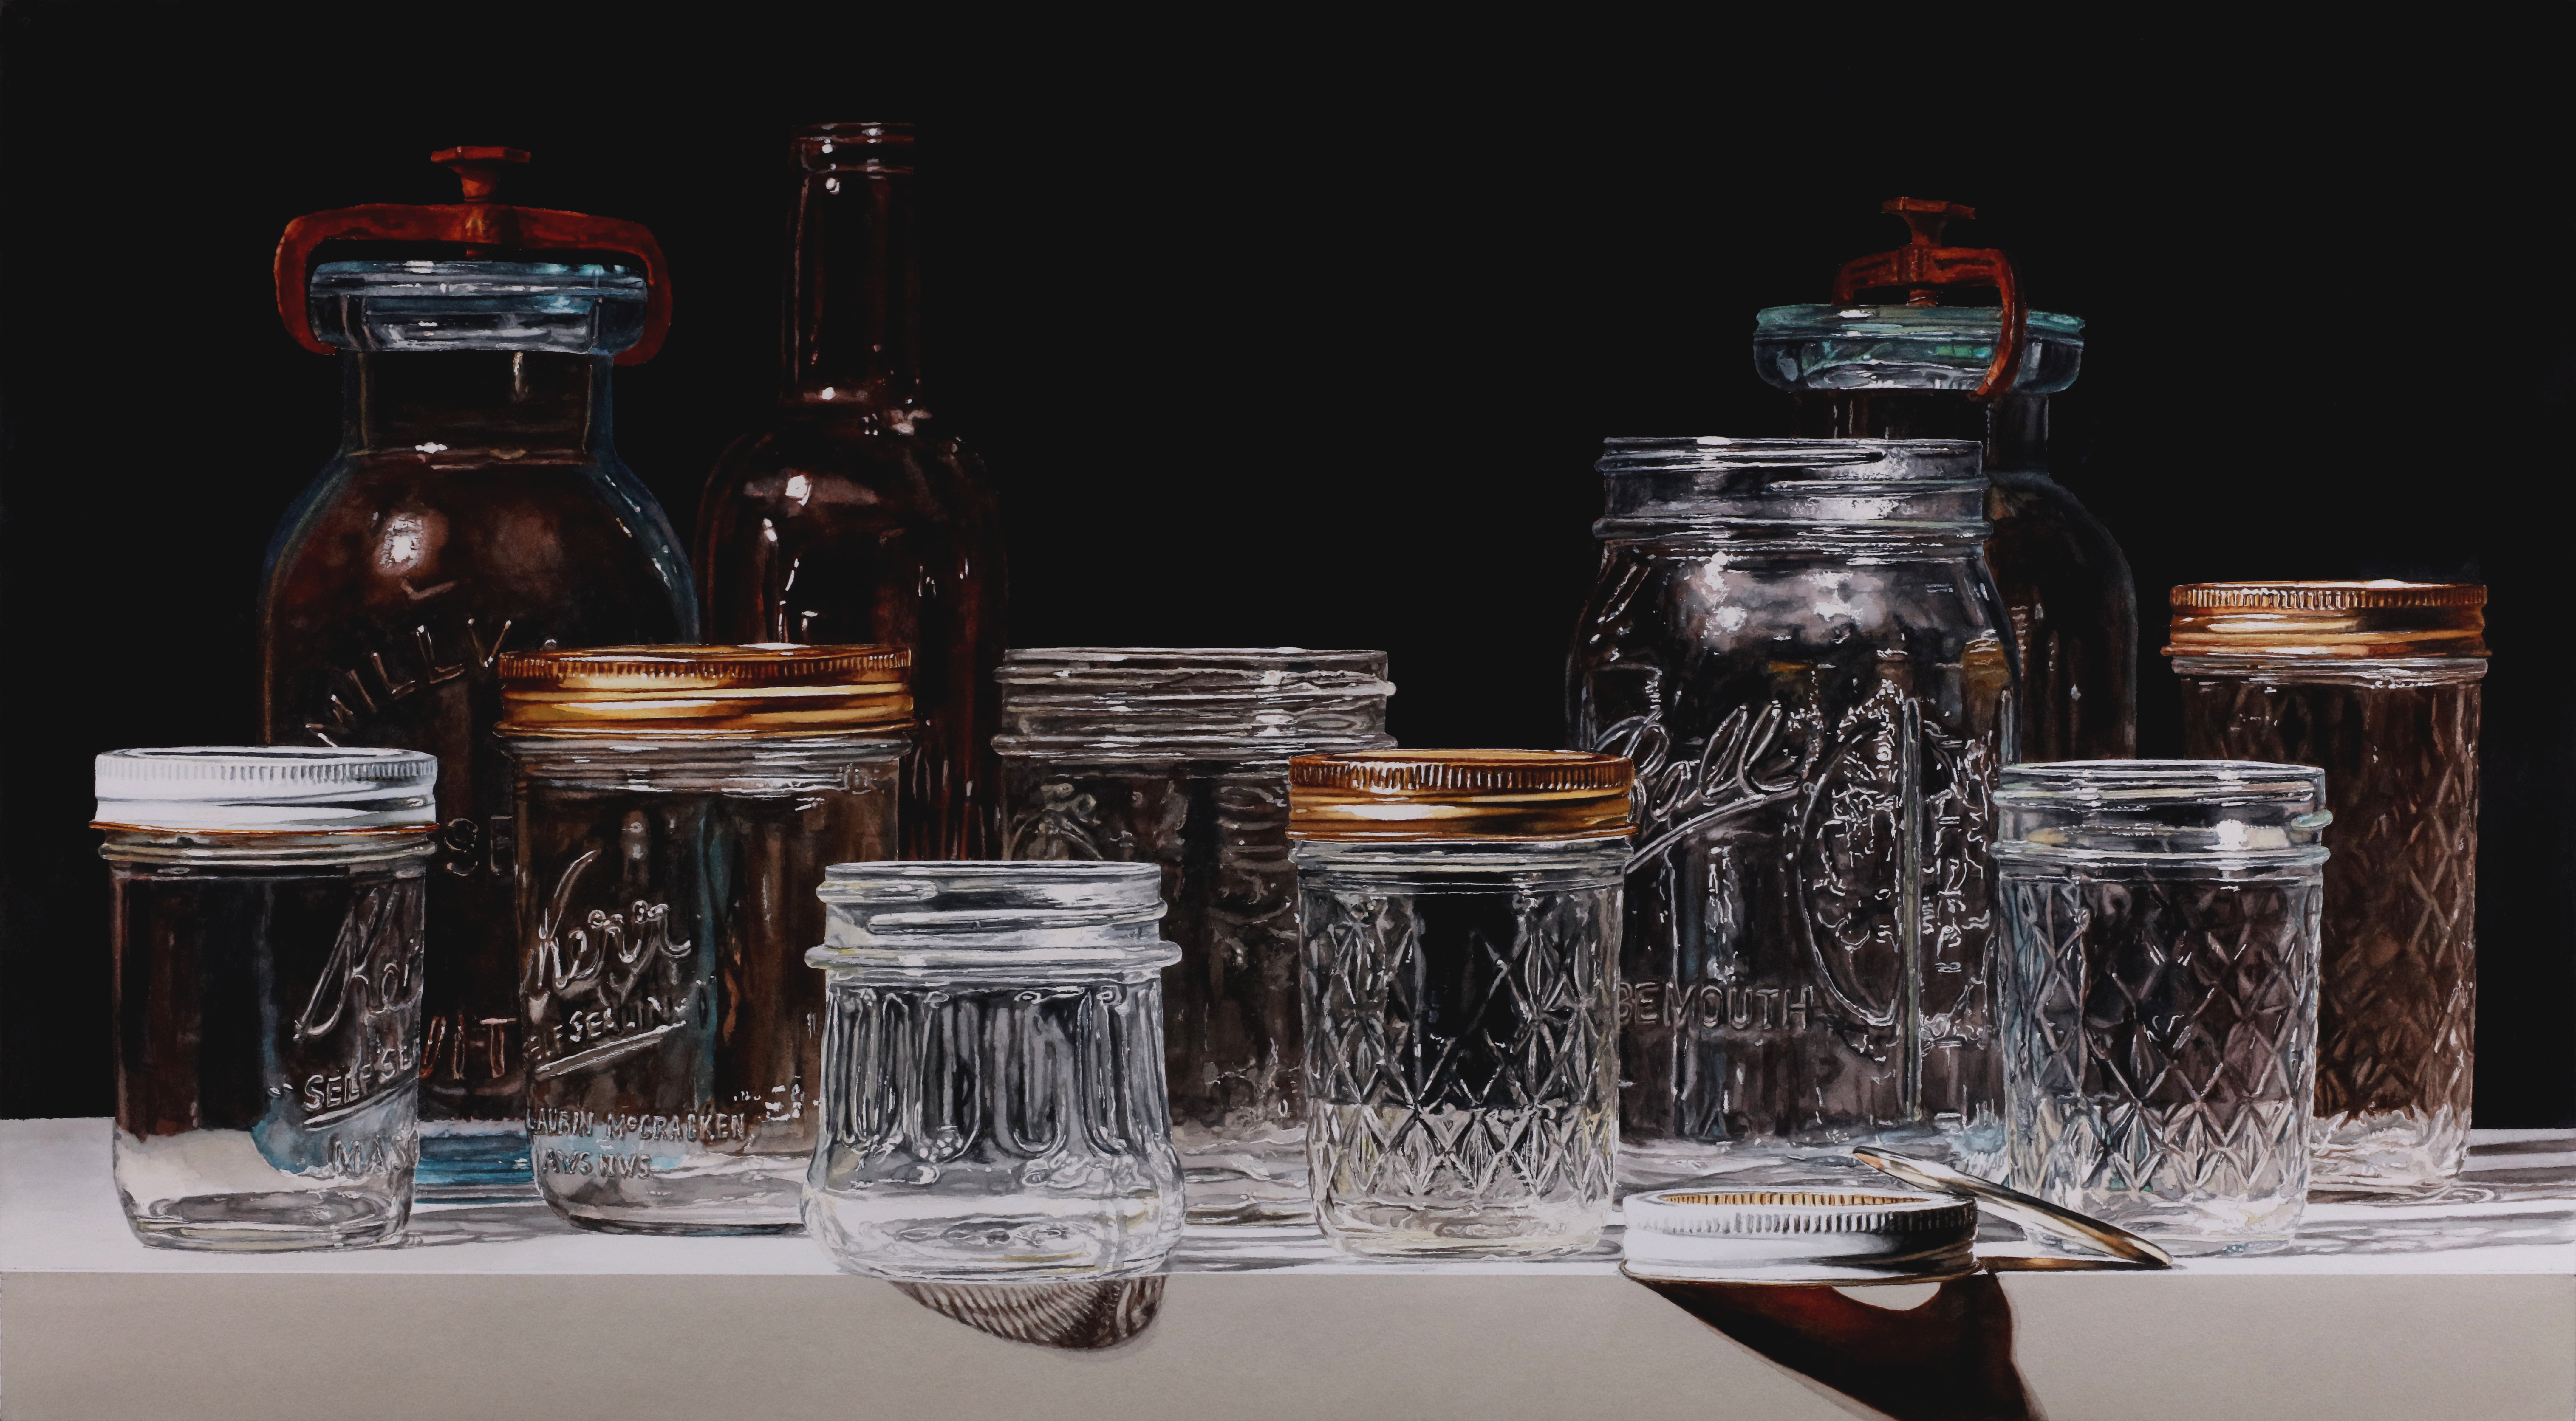 Watercolor art society of houston -  Canning Jars On Black Has Been Awarded The Morris Shubin Aws Memorial Award In This Year S American Watercolor Society 150th International Exhibition